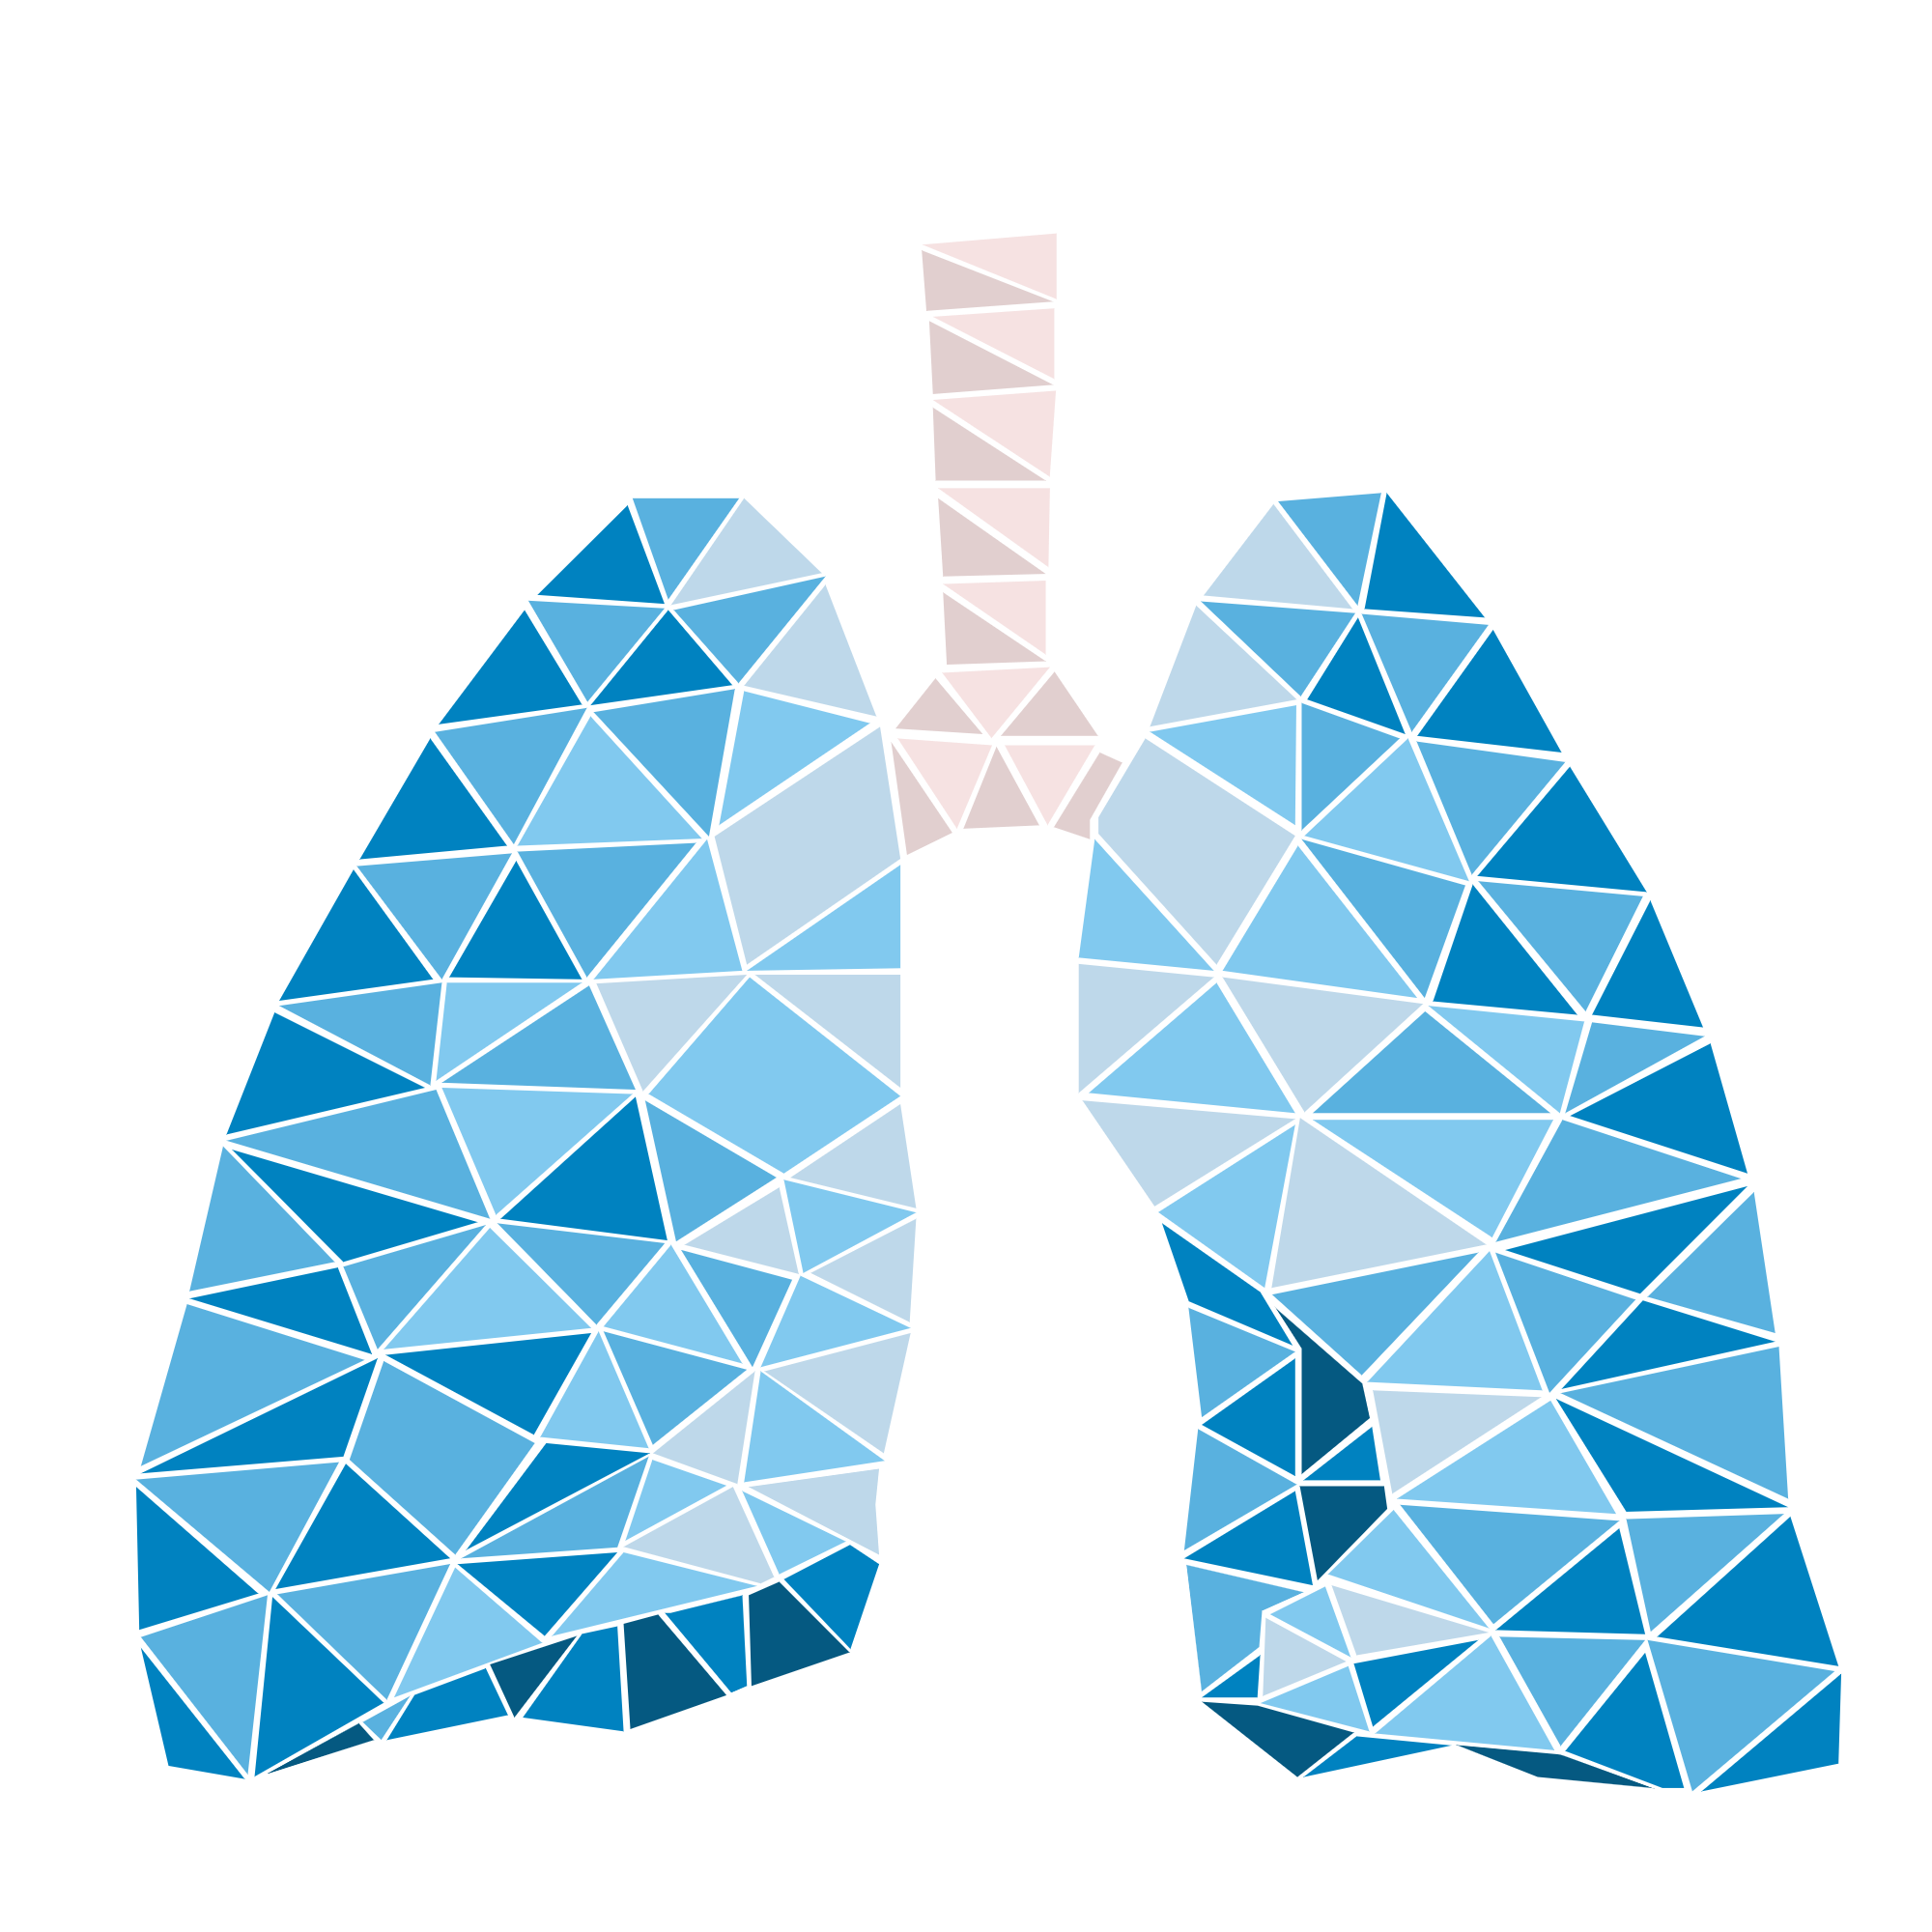 Inhaled COVID-19 drugs Lungs